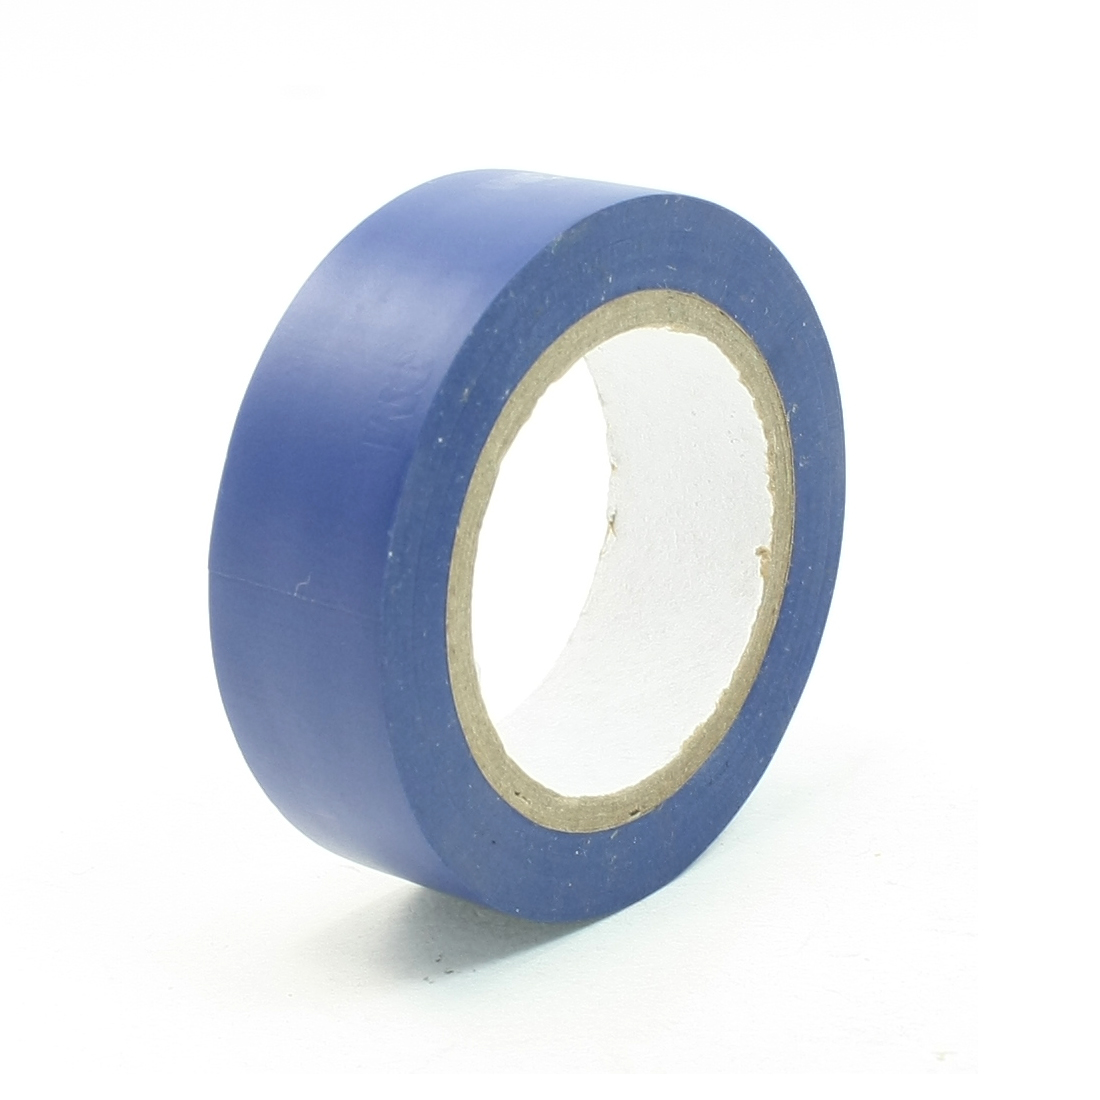 PVC Electrical Wire Insulating Tape Roll Blue 10M Long 17.5mm Wide